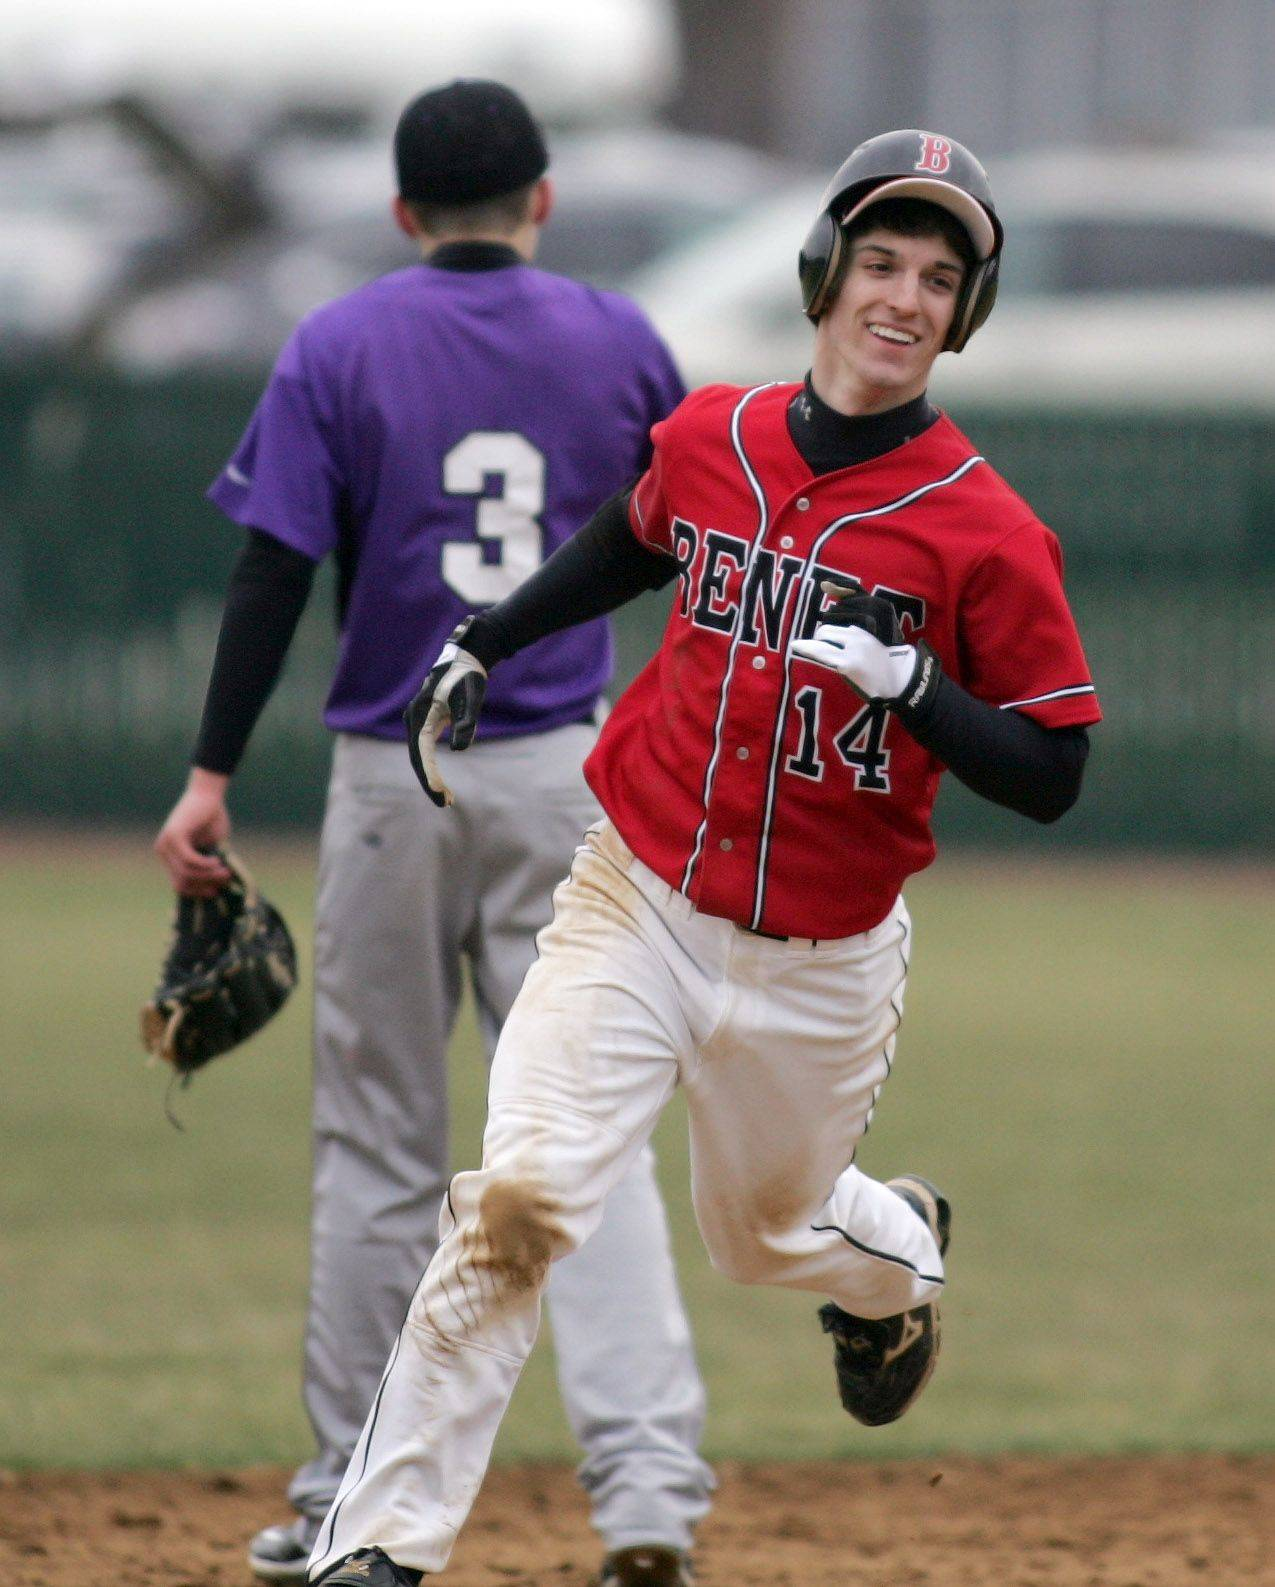 R. J. Gatto of Benet is all smiles rounding second base after his home run Tuesday.